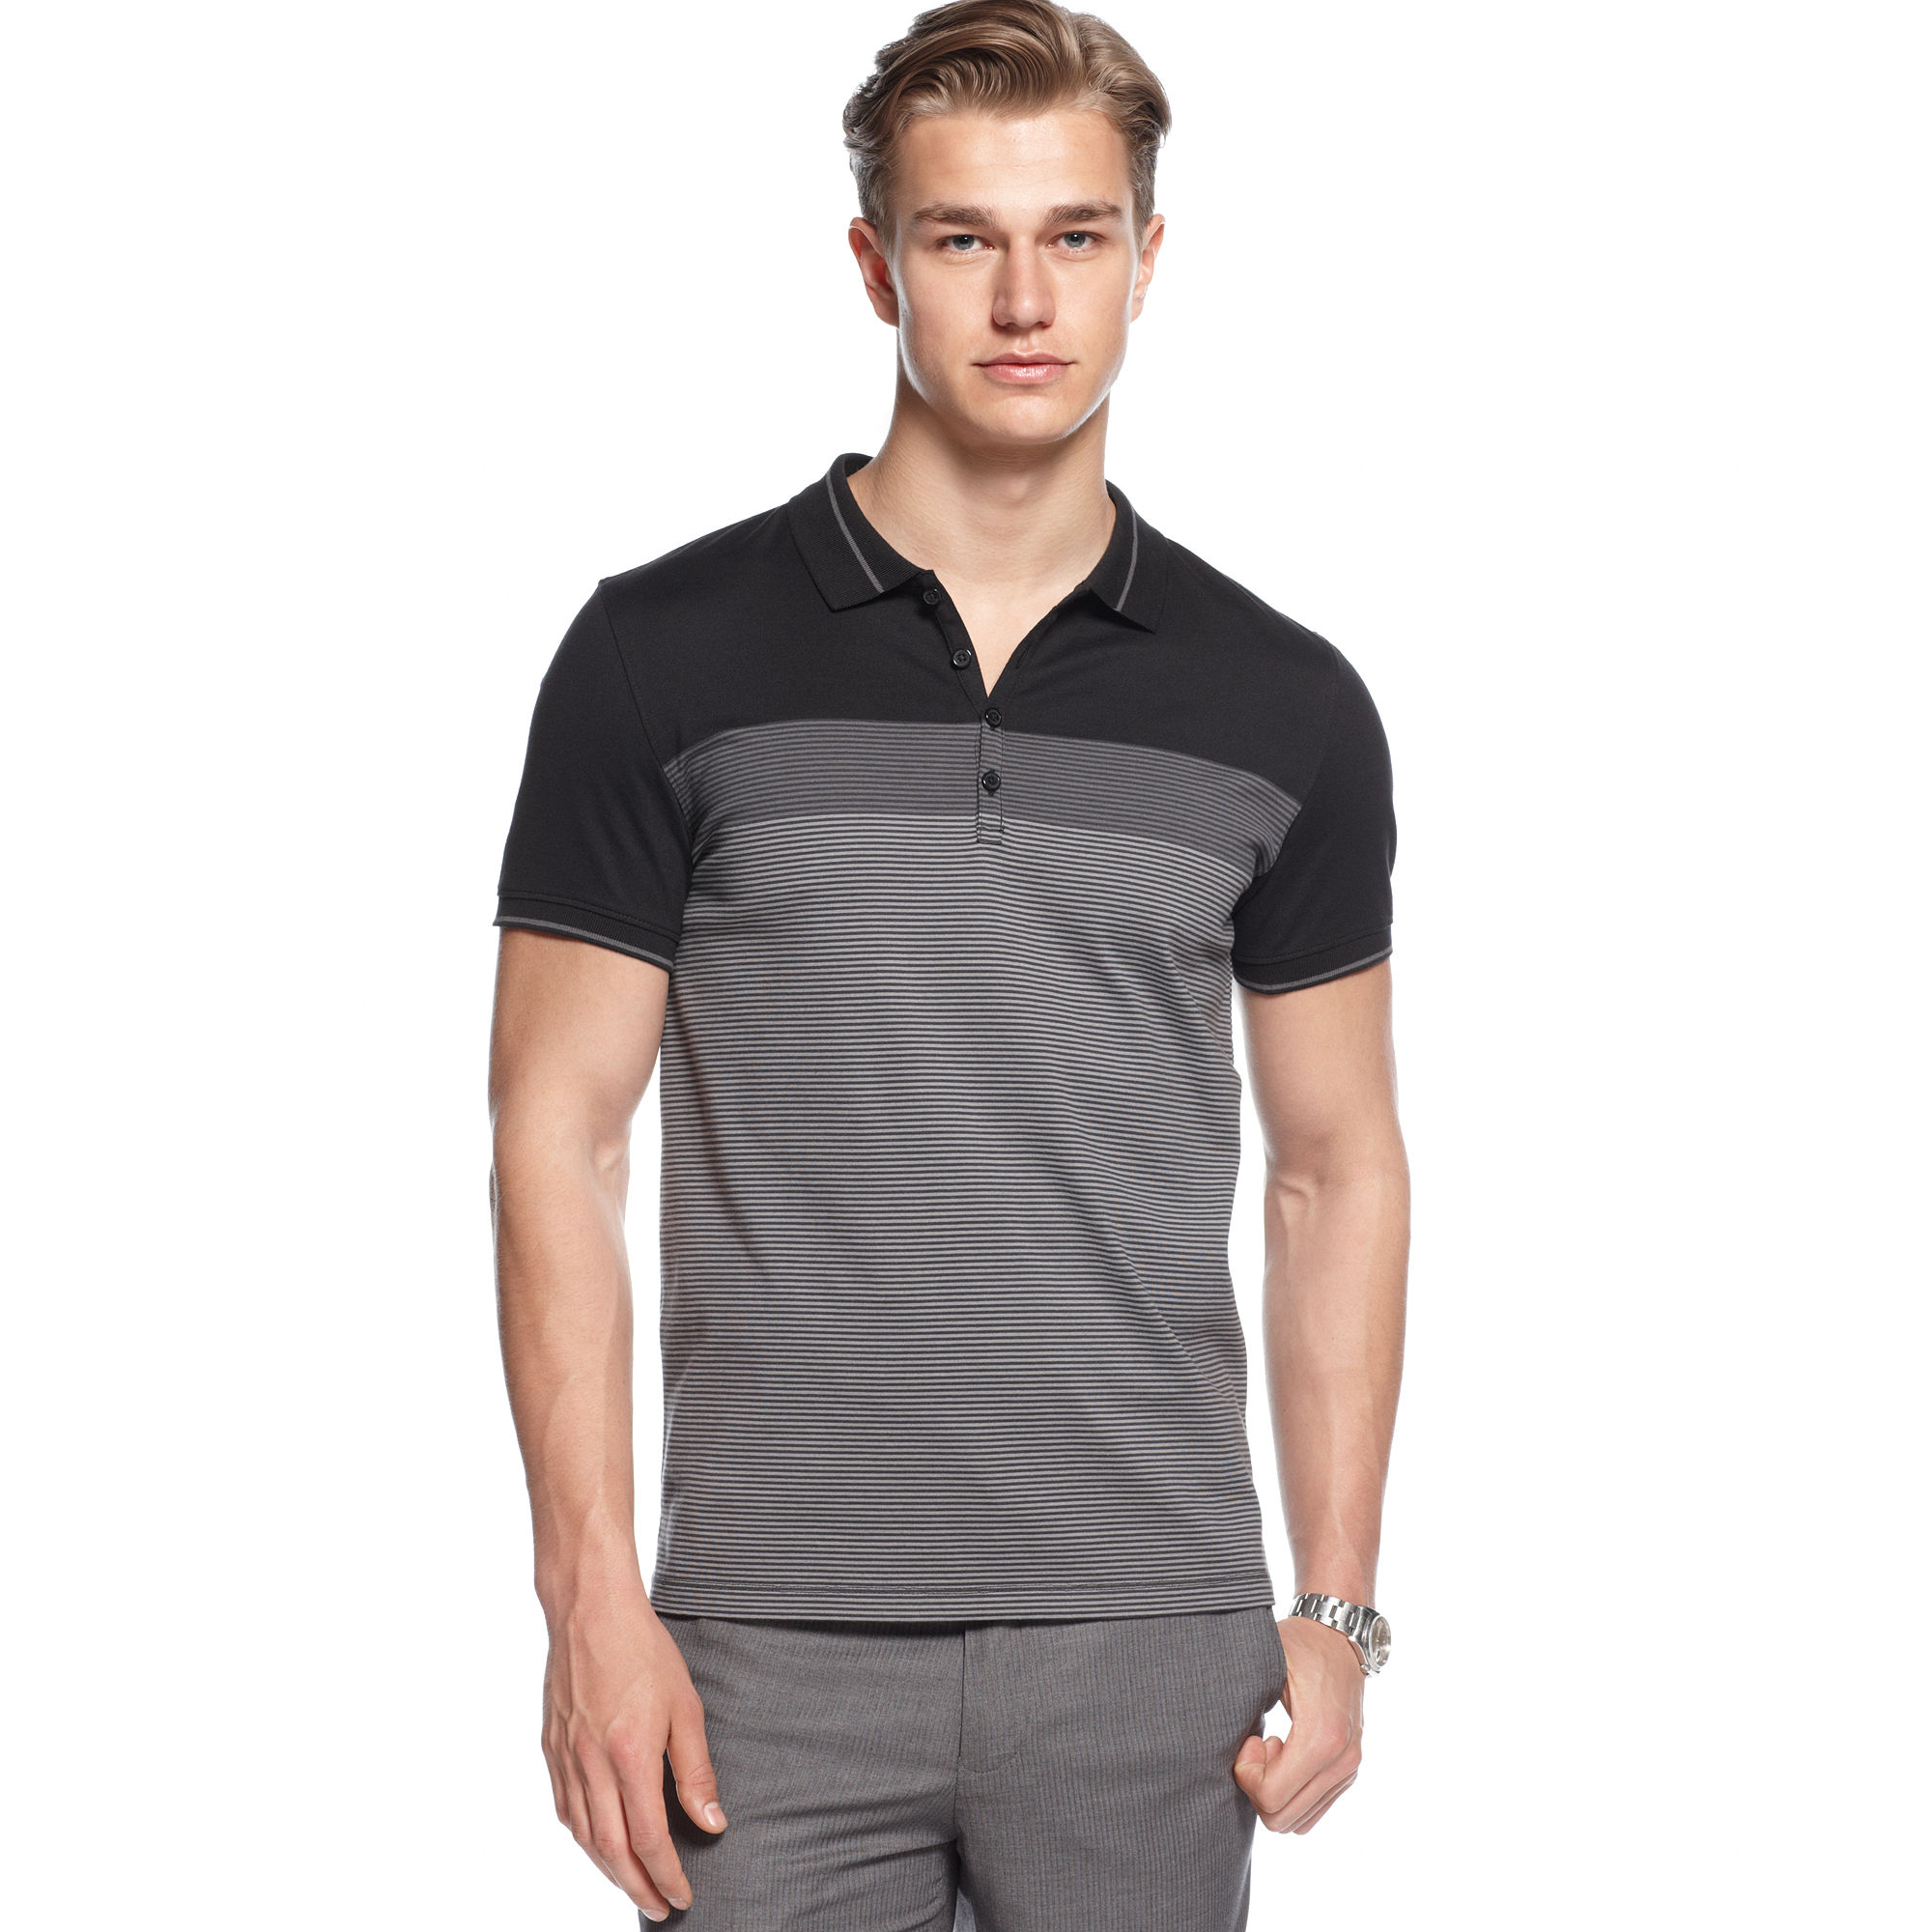 Outlet Cheap Calvin Klein Regular-Fit Short Sleeve Polo Shirt Clearance Low Cost Free Shipping 2018 zuwwS65